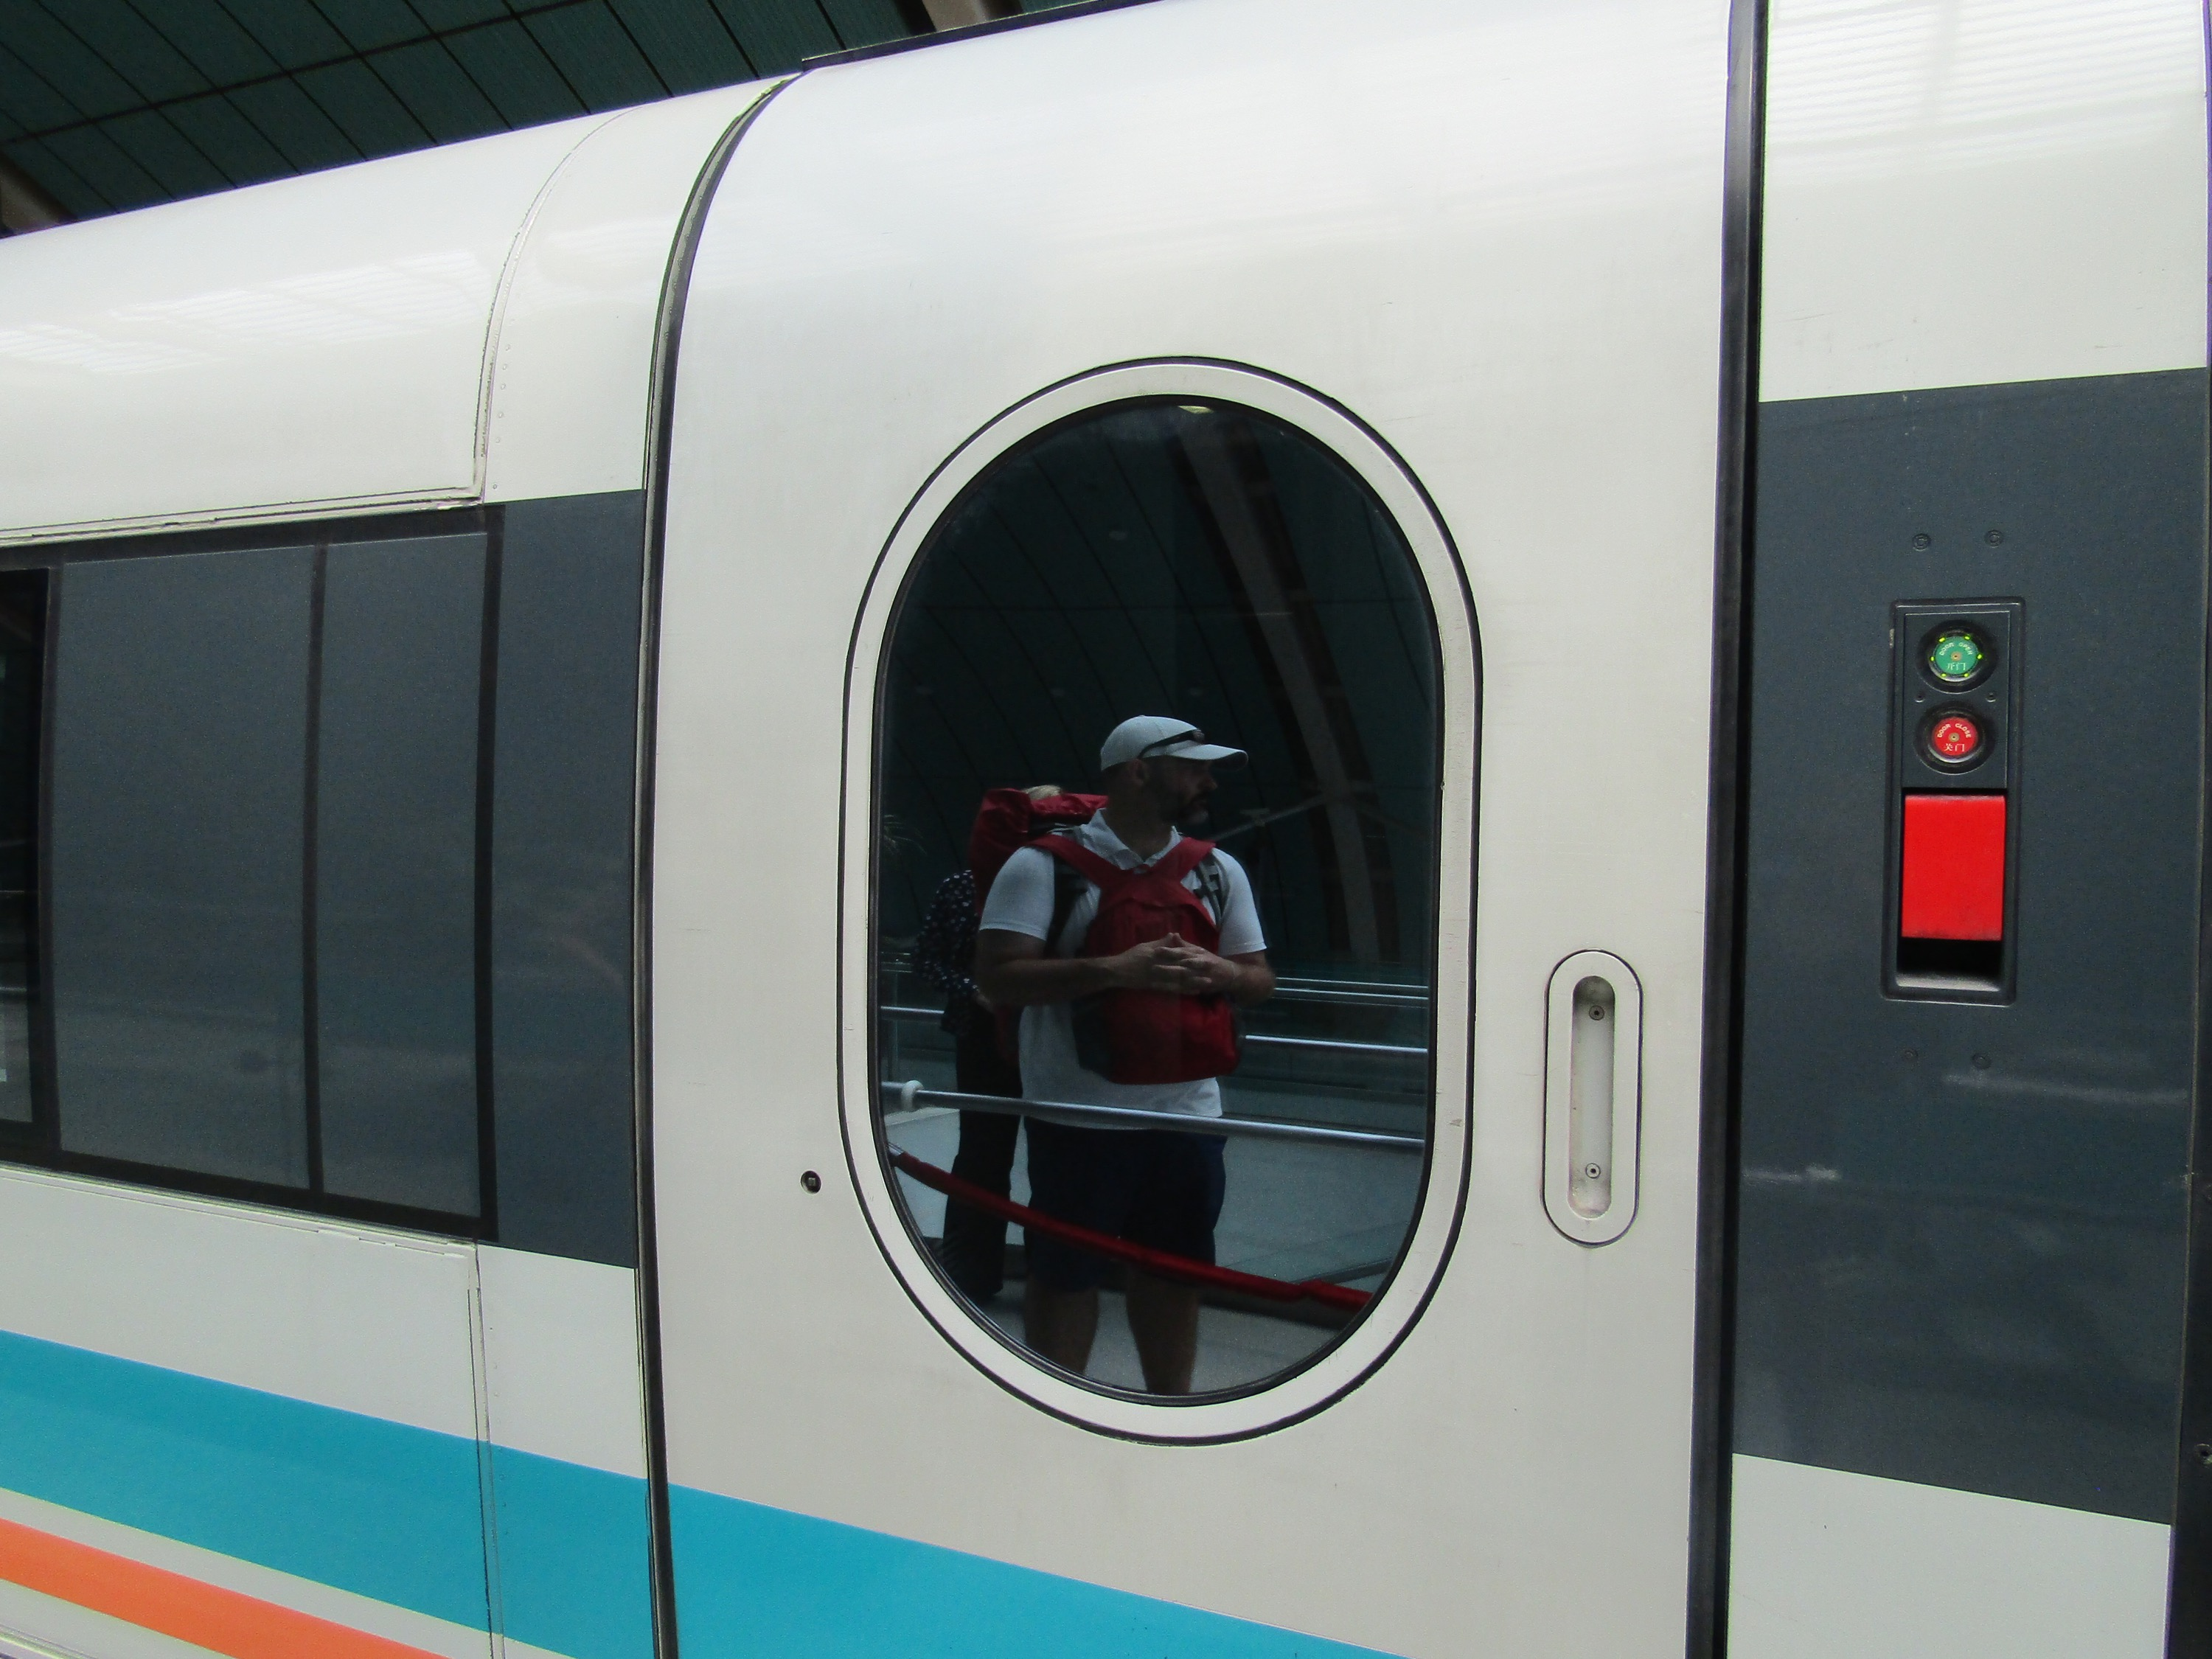 Although we had plenty of time to get to the airport for our flight leaving Shanghai, we opted for the super-fast maglev train purely for the experience. The line is one of only two maglev trains currently in commercial operation (Japan has the other).